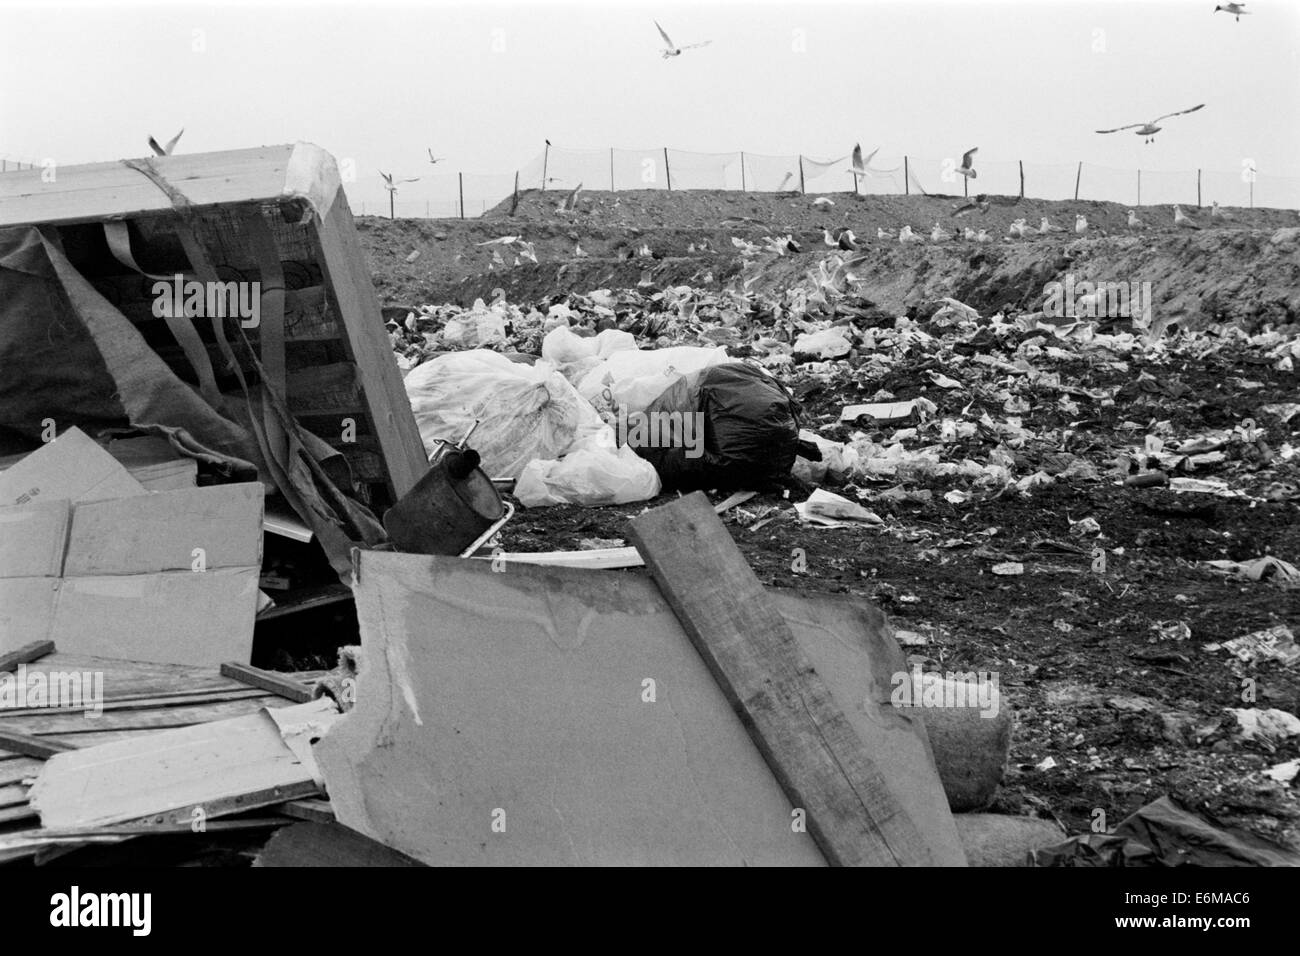 mounds of garbage at a landfill site in the 1990s which is now buried beneath port solent portsmouth england uk - Stock Image